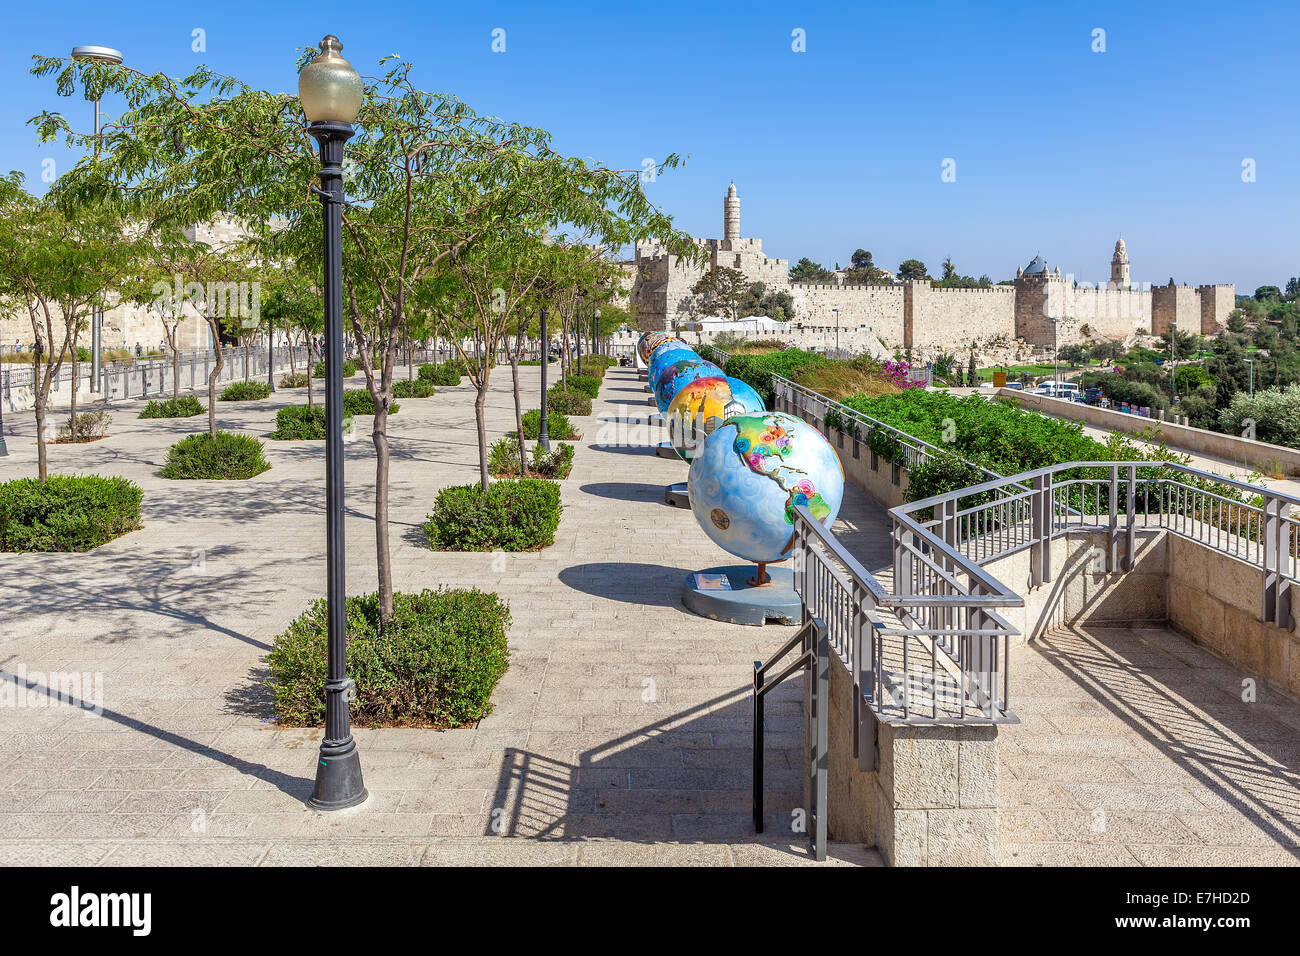 Globes exposition in Old City of Jerusalem, Israel. - Stock Image